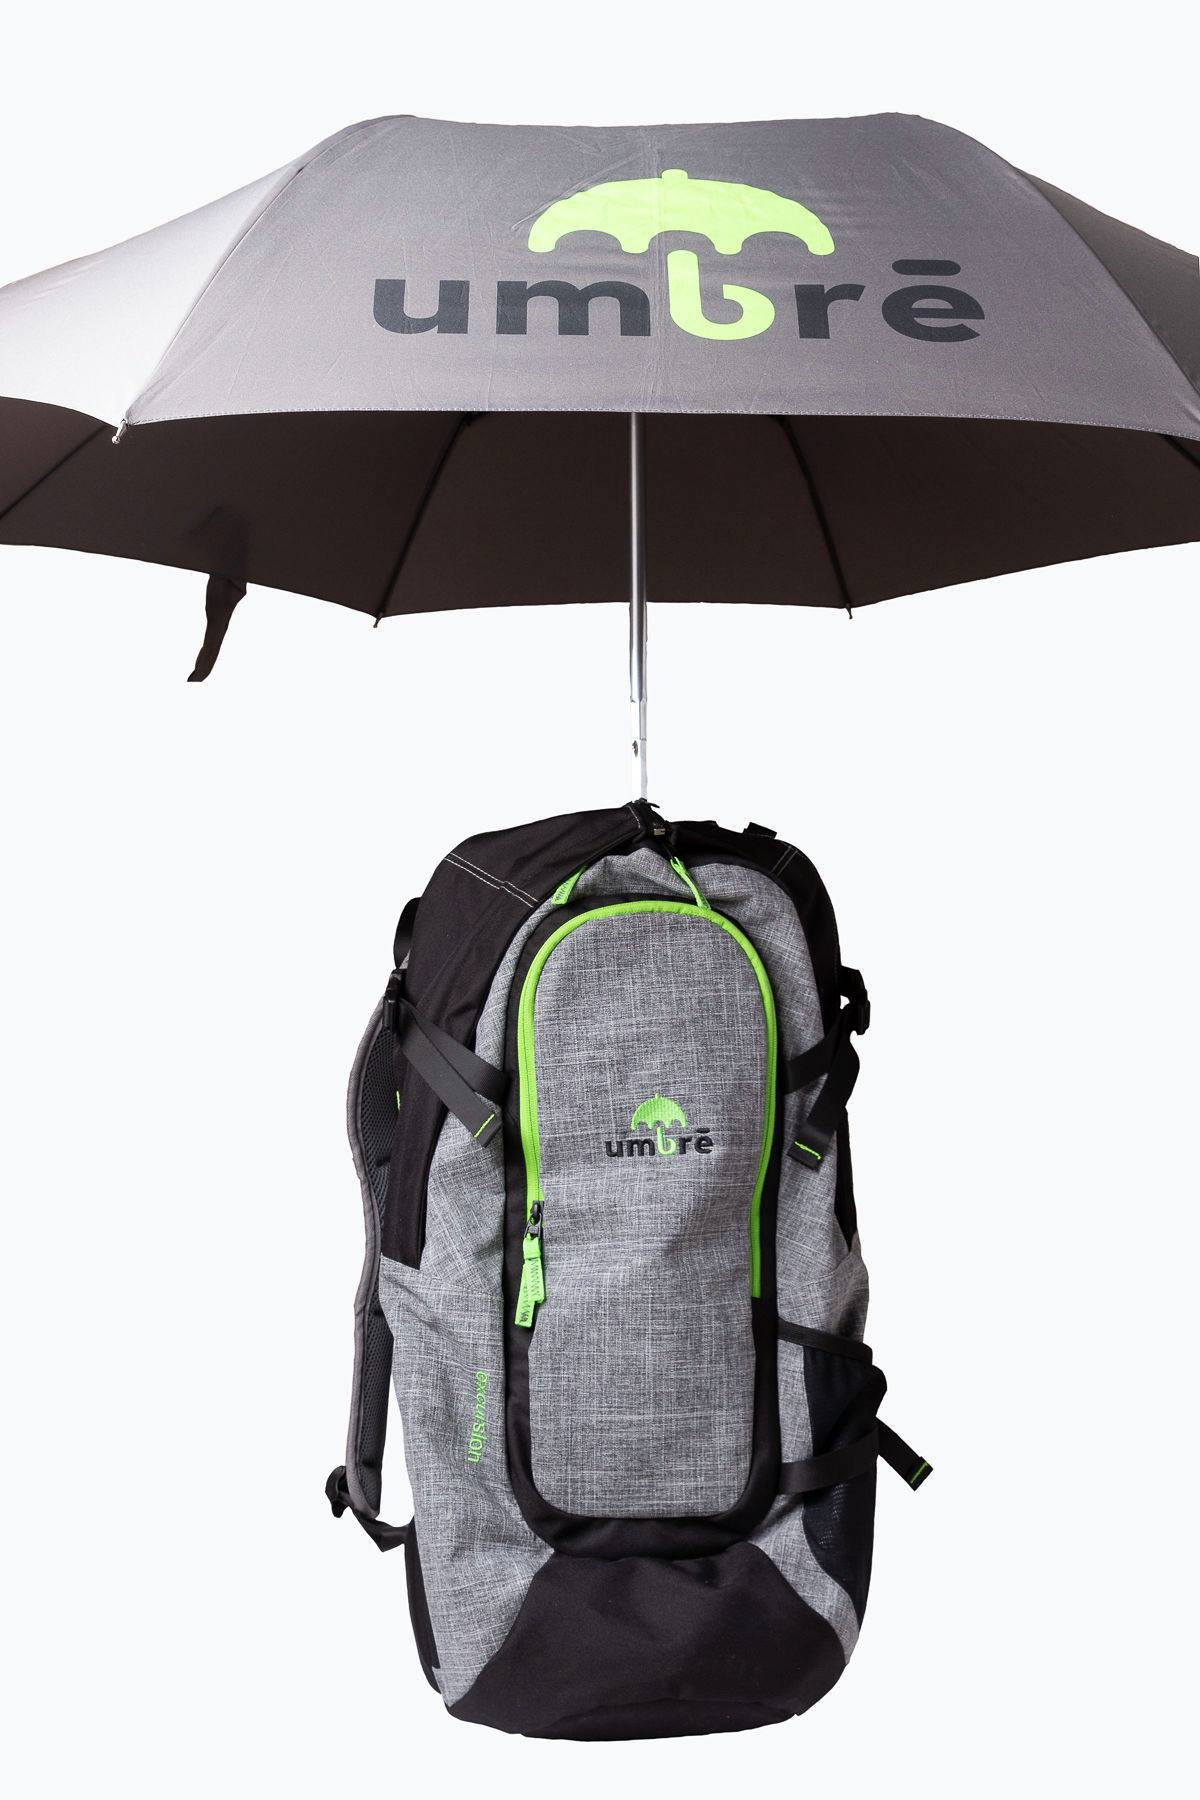 Hands Free Umbrella & Backpack In One